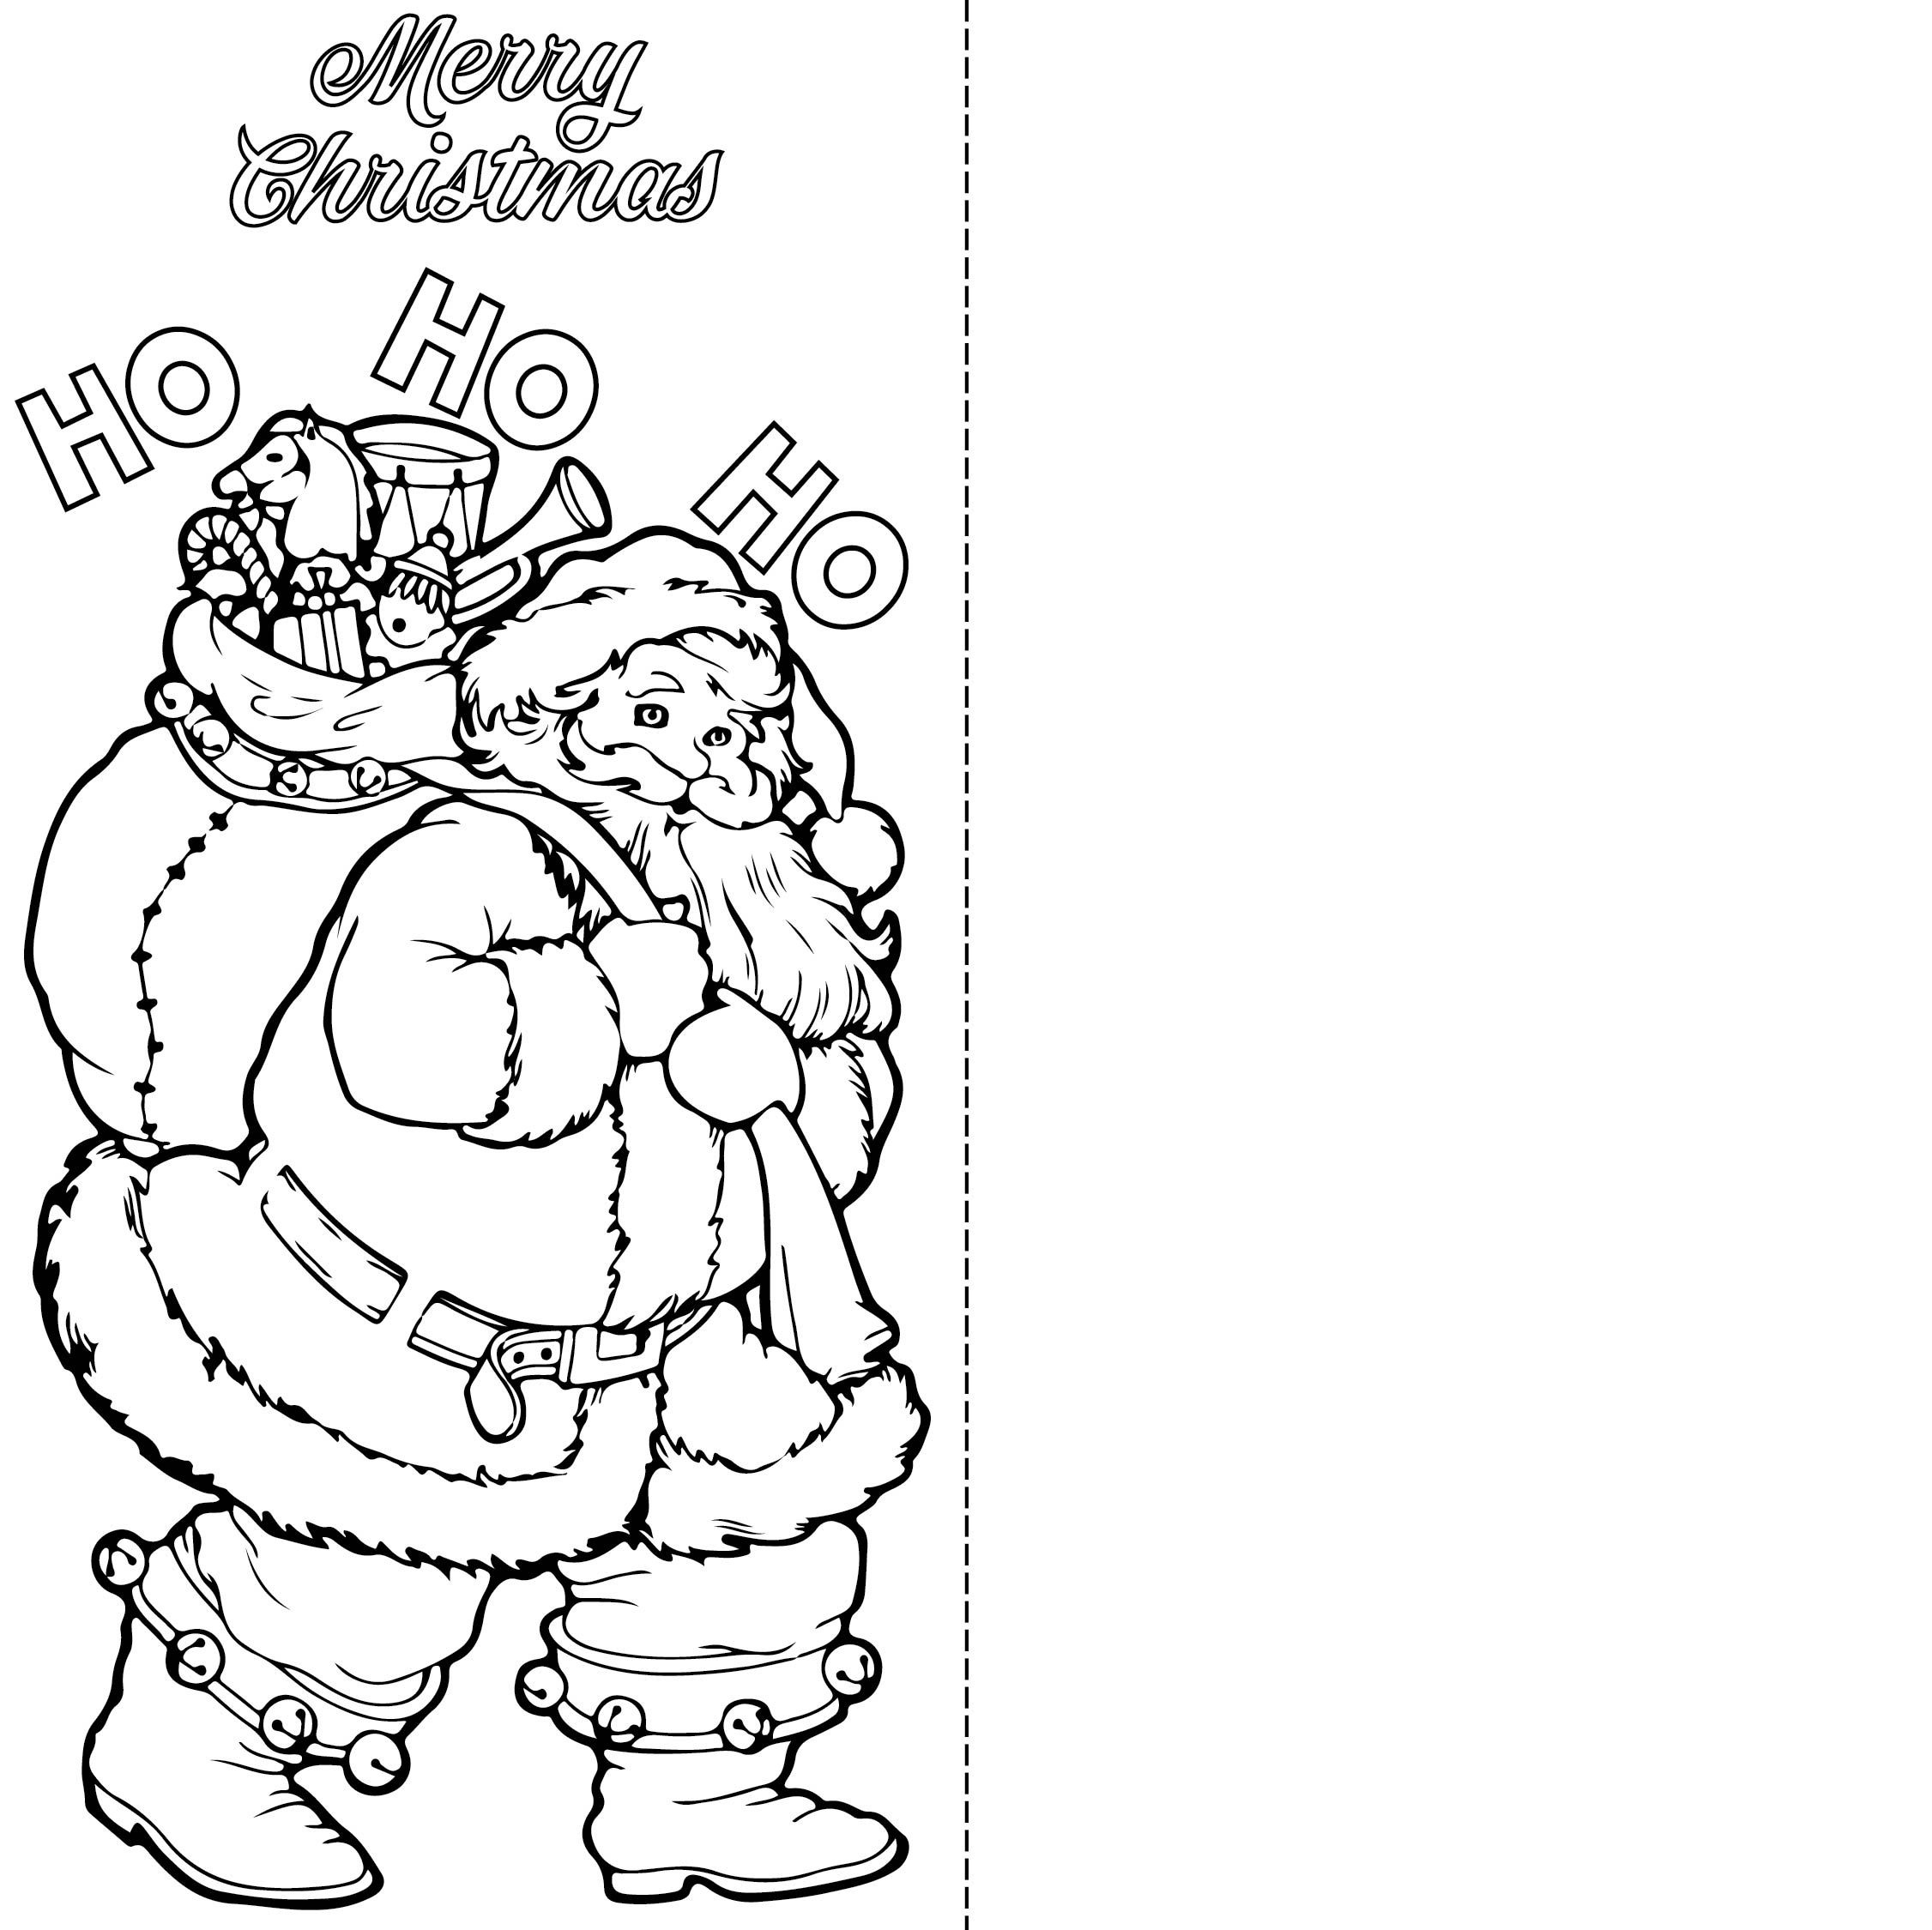 Printable Christmas Cards Kids Color